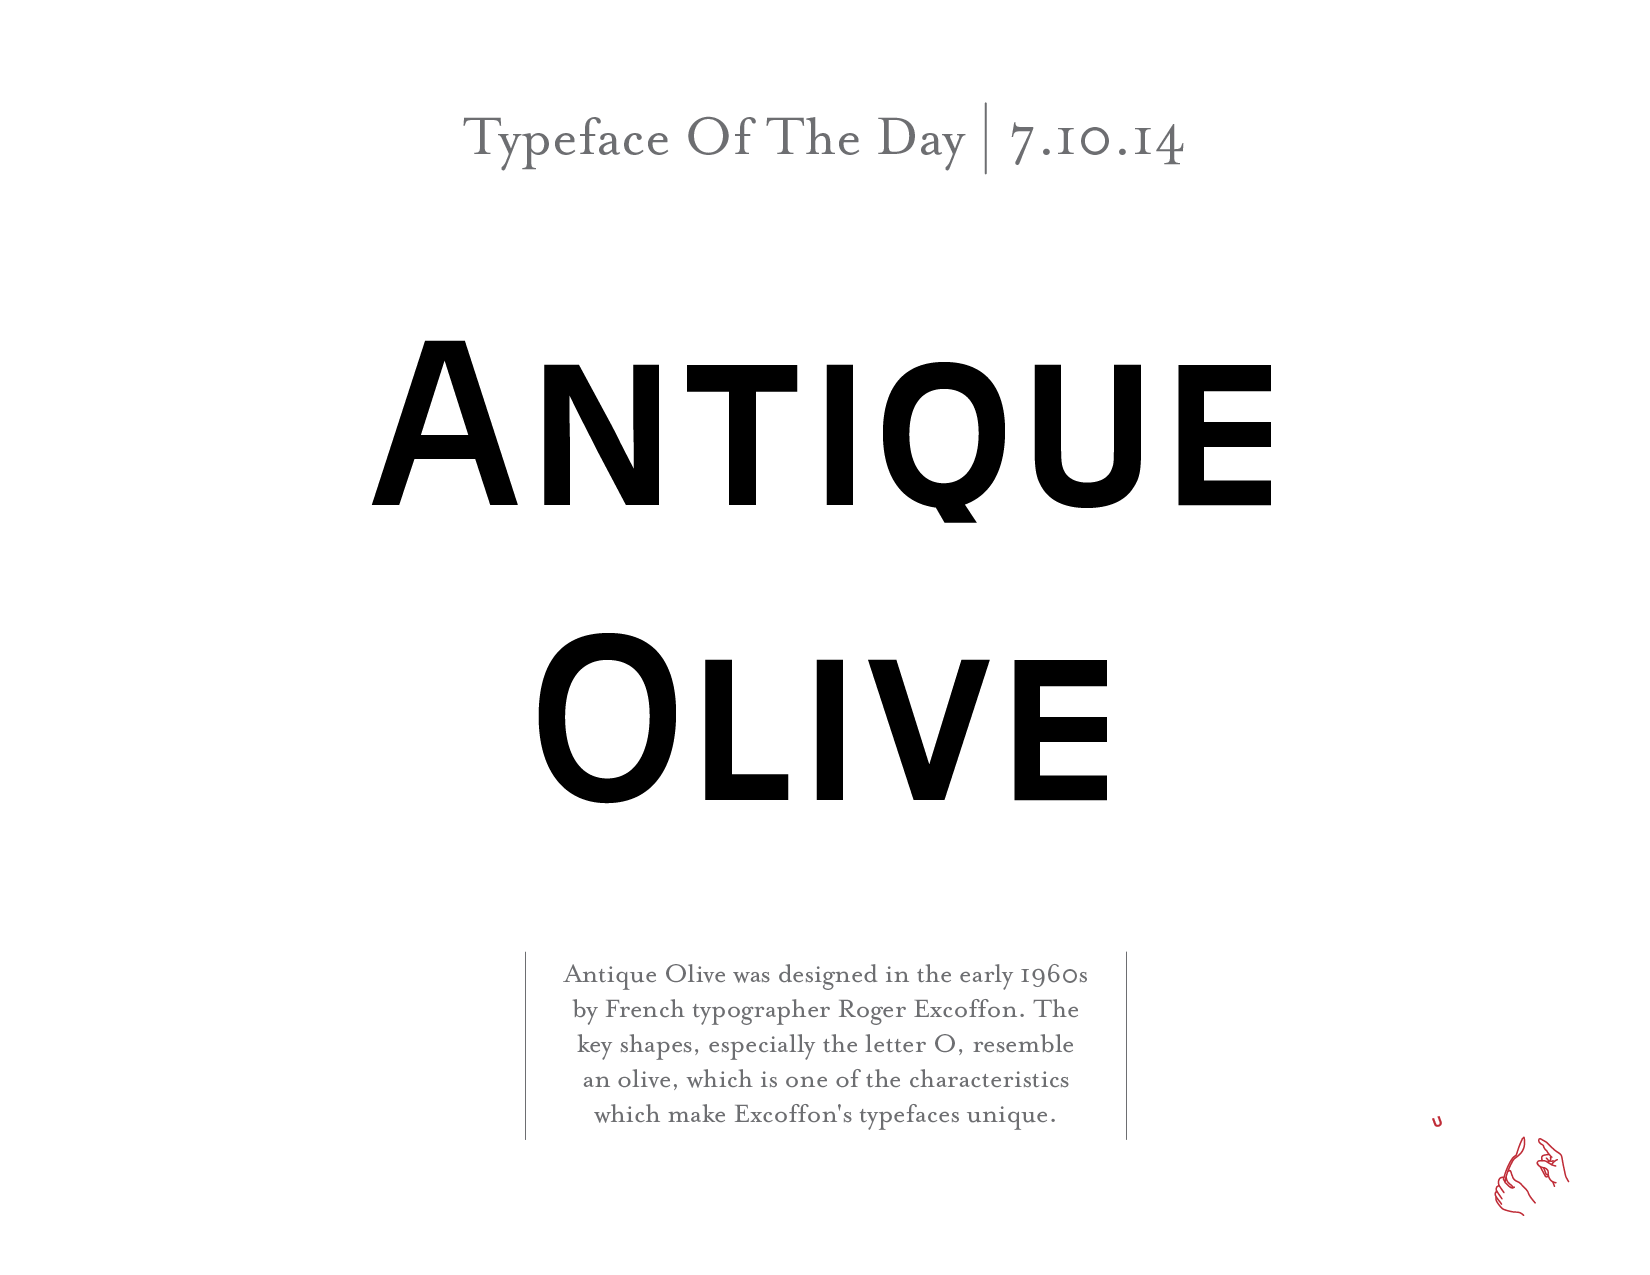 Today's typeface is Antique Olive   Catapult Strategic Design   Moving Brands Forward Since 1999 www.catapultu.com #type #typography #graphicdesign #fonts #design